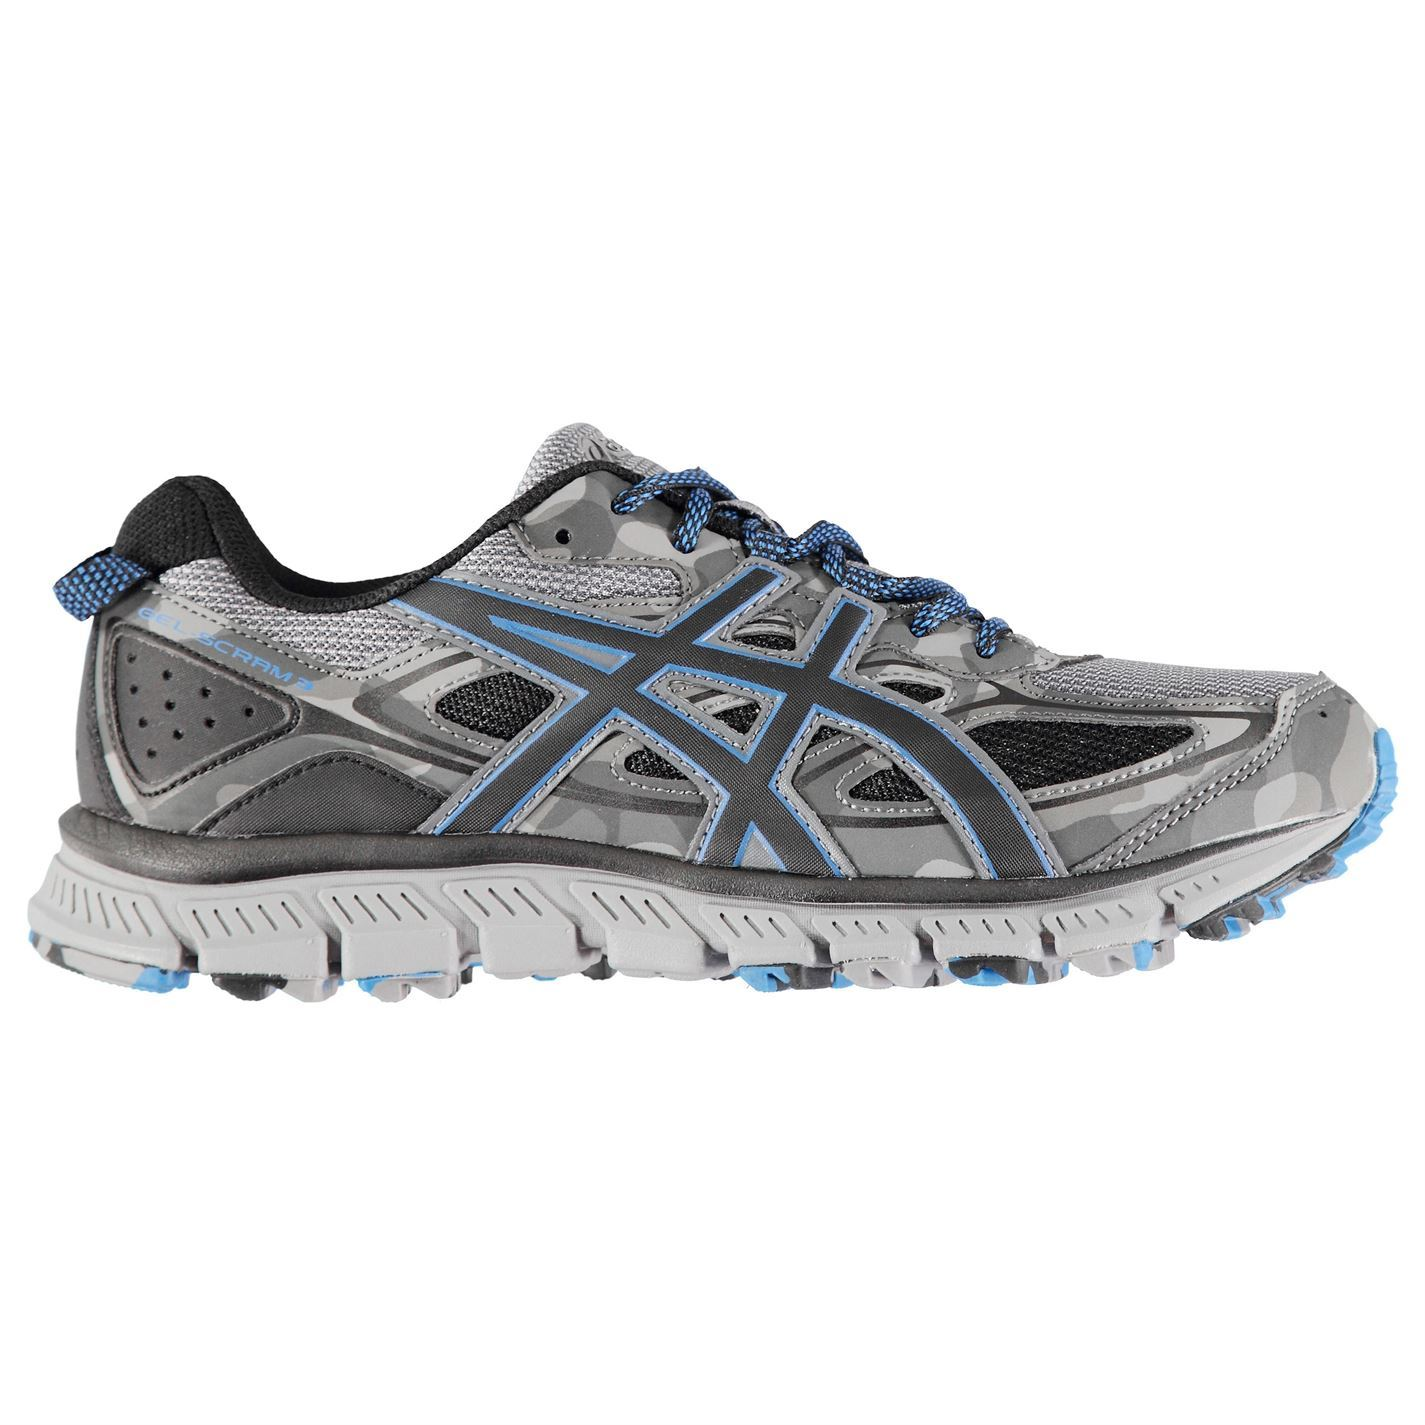 Asics Gel Scram  3 Running Schuhes  Scram Herren Gents Trail Laces Fastened Ventilated 597af0